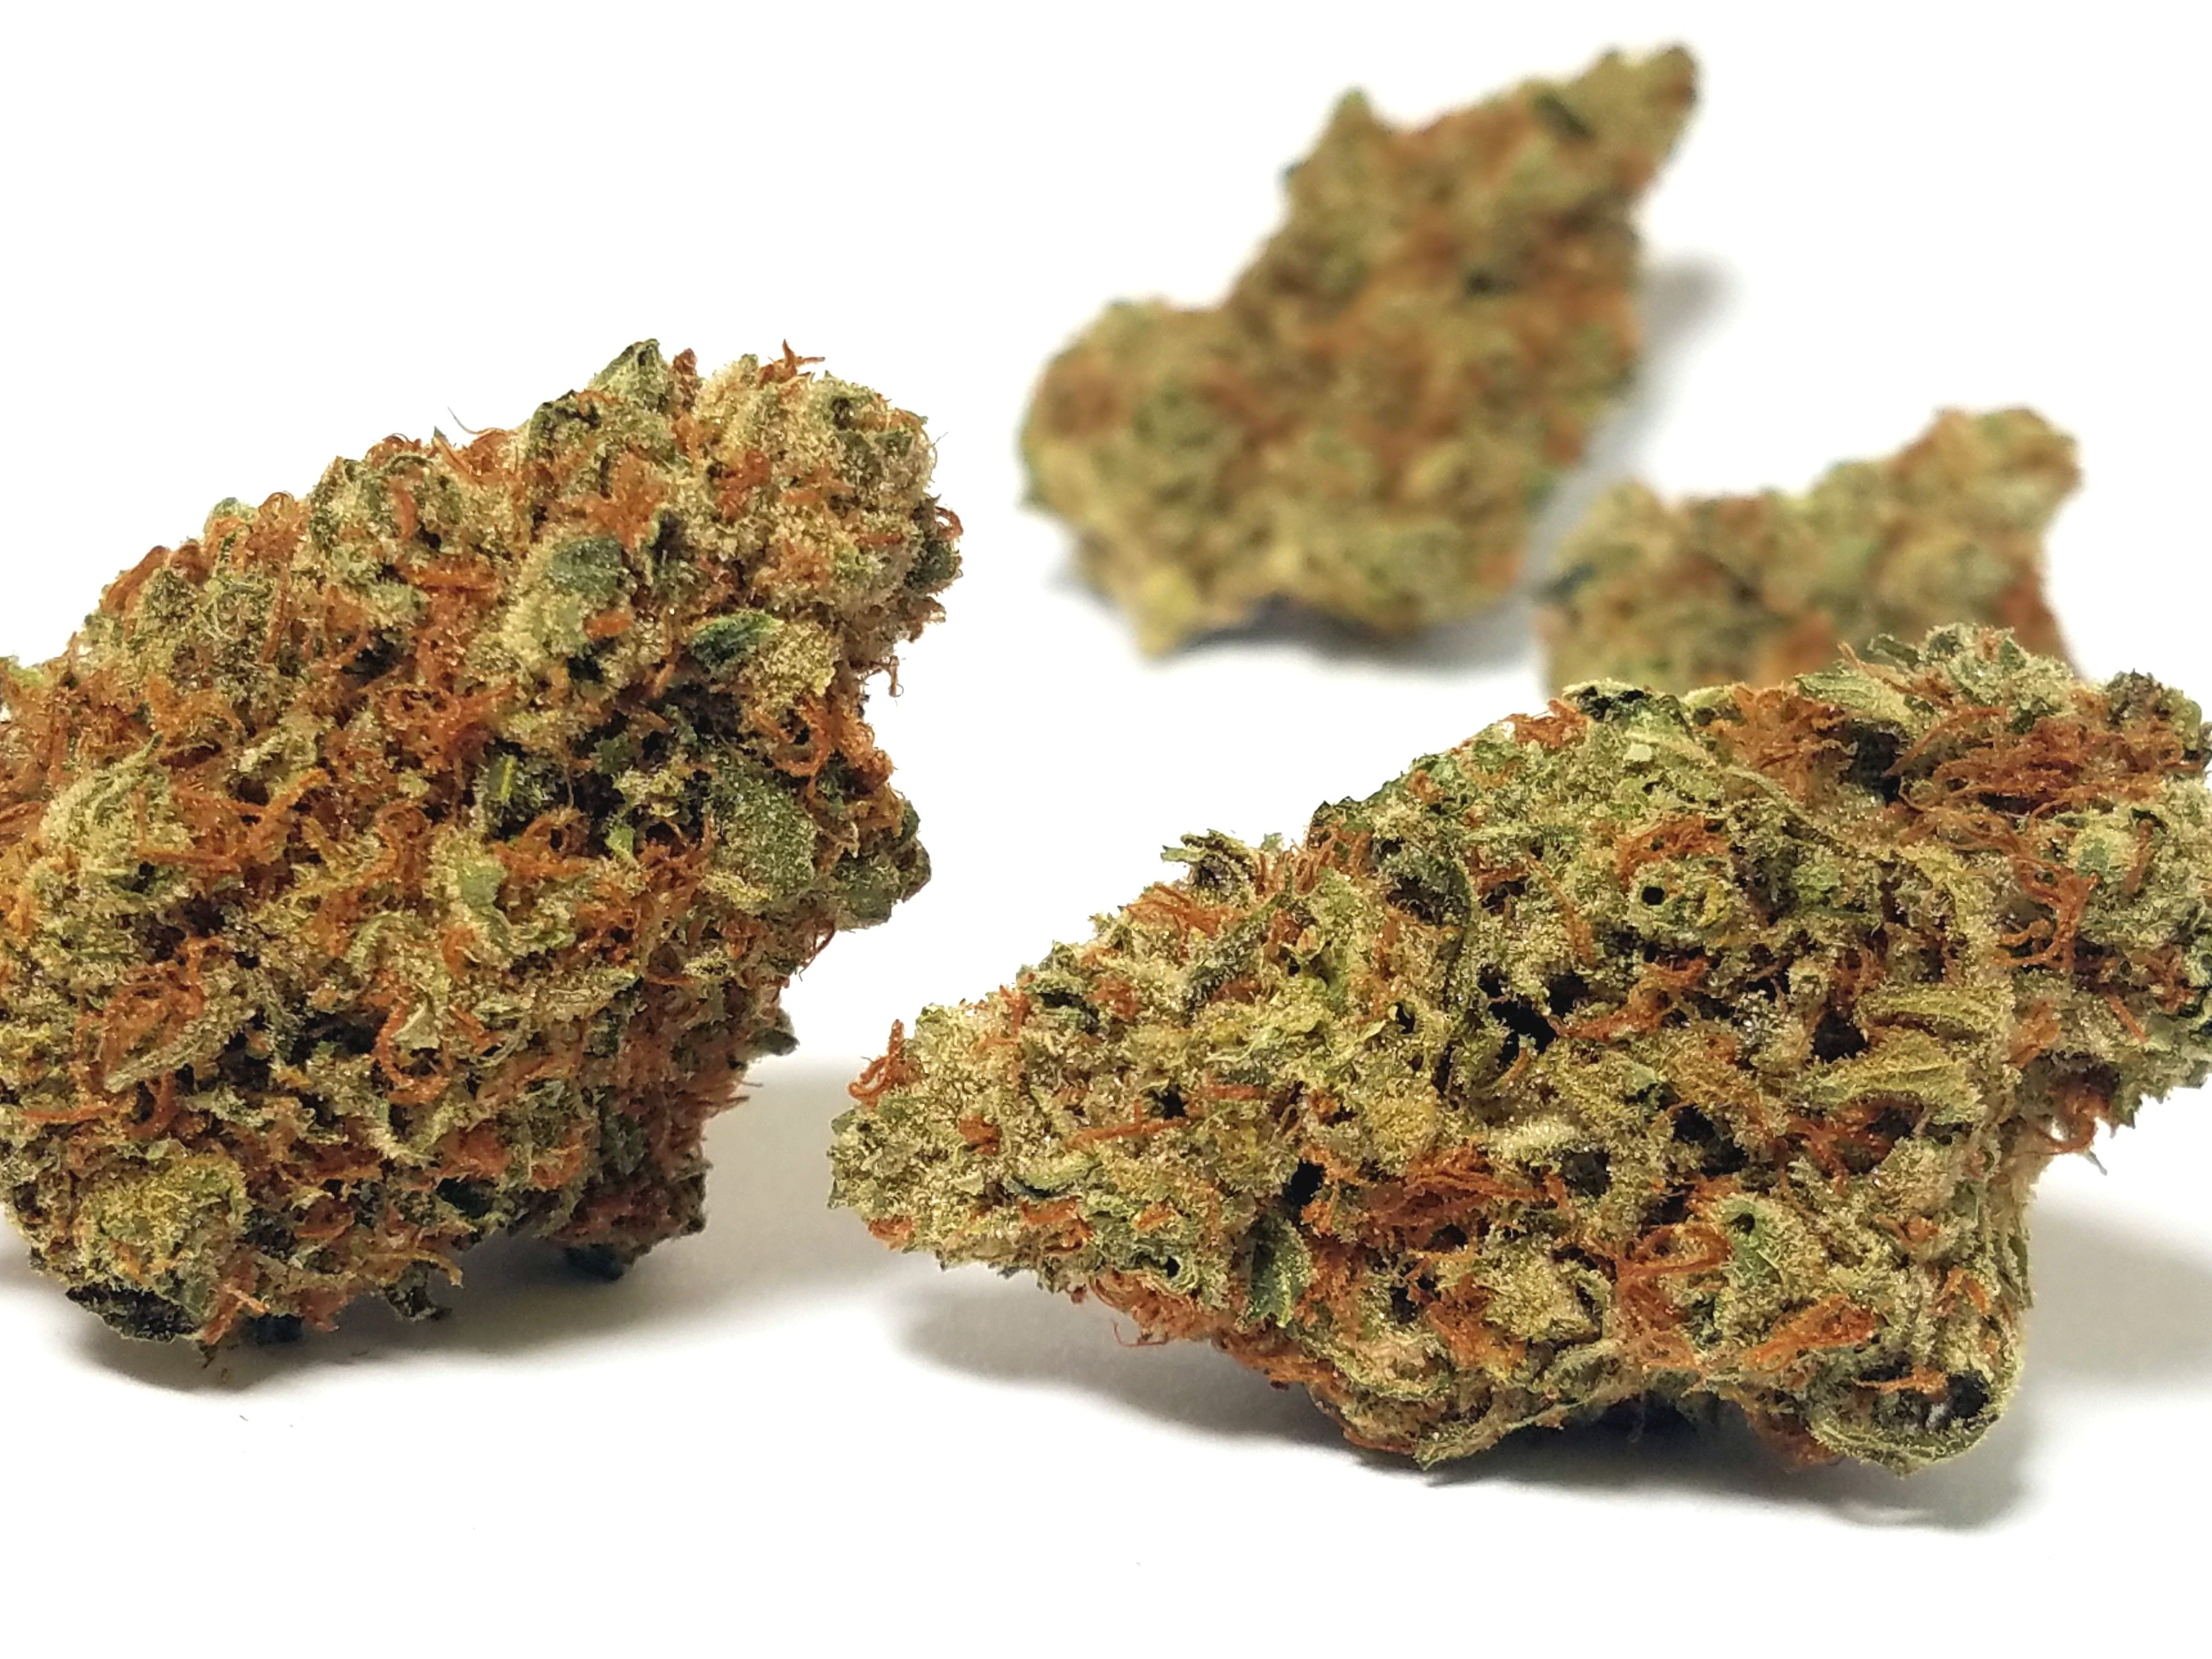 Herbal Dynamic - Golden Lemons, Indica Hybrid, Indoor